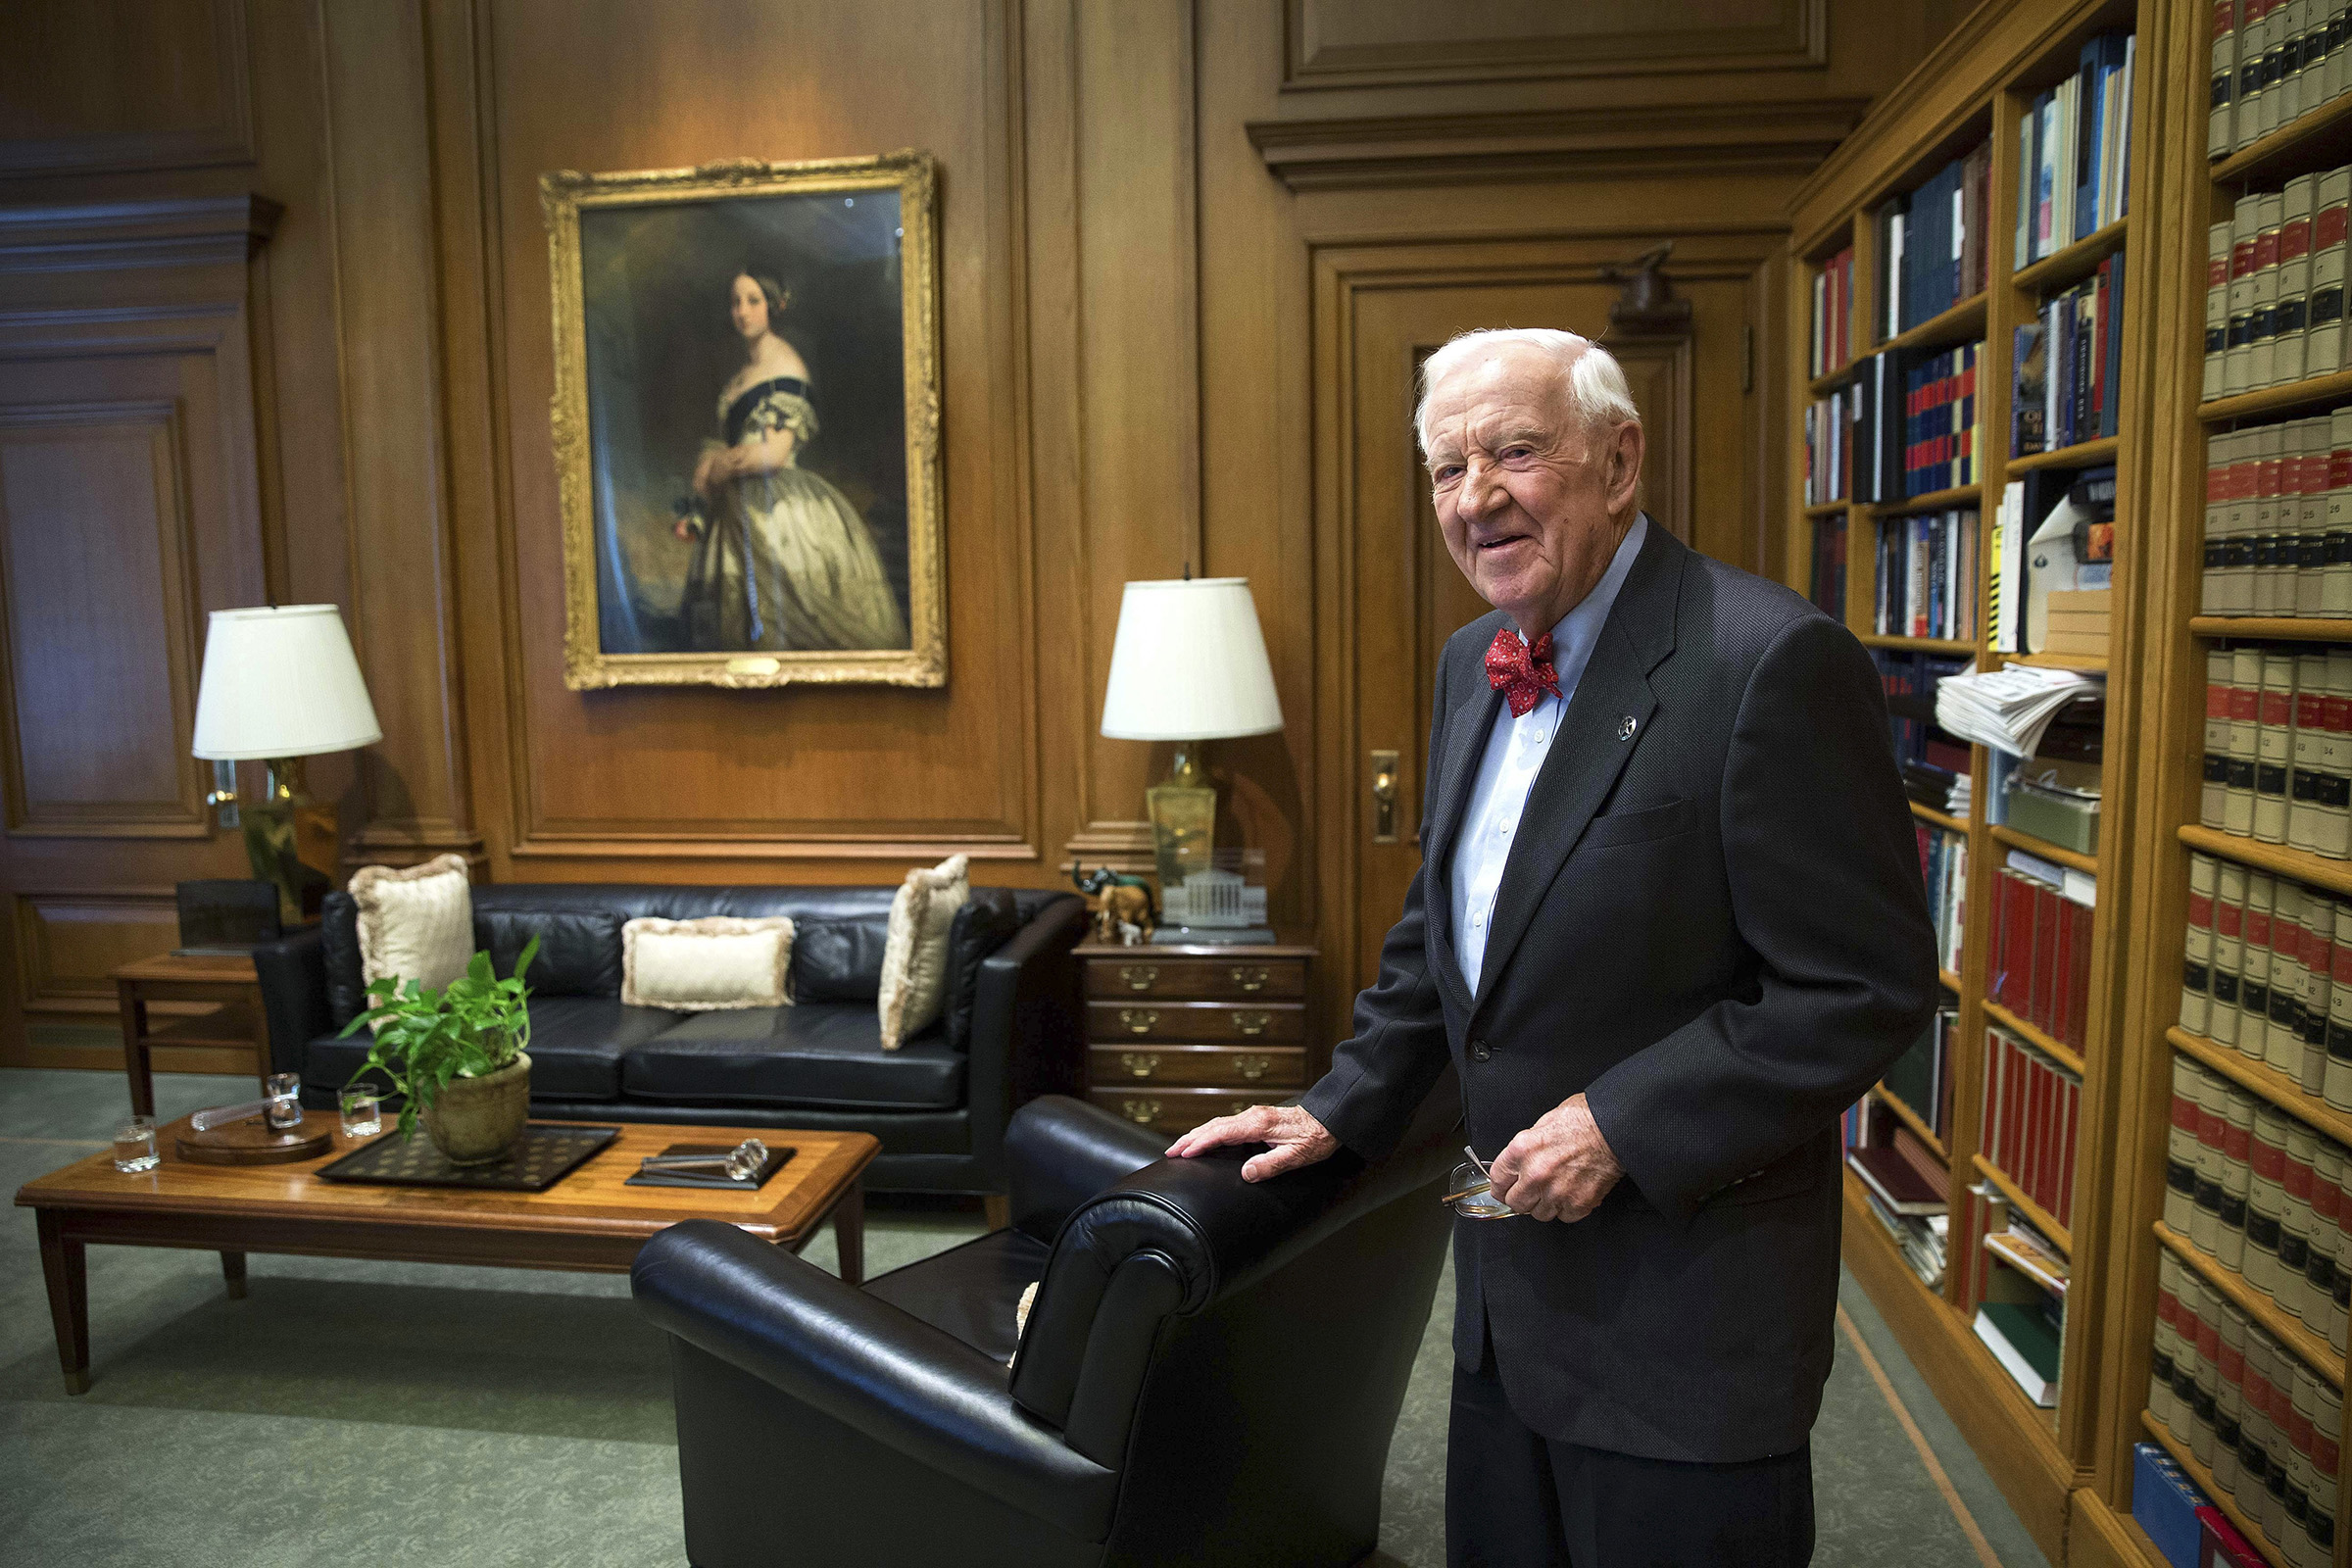 Justice John Paul Stevens in his chambers at the Supreme Court in Washington, on April 15, 2014.